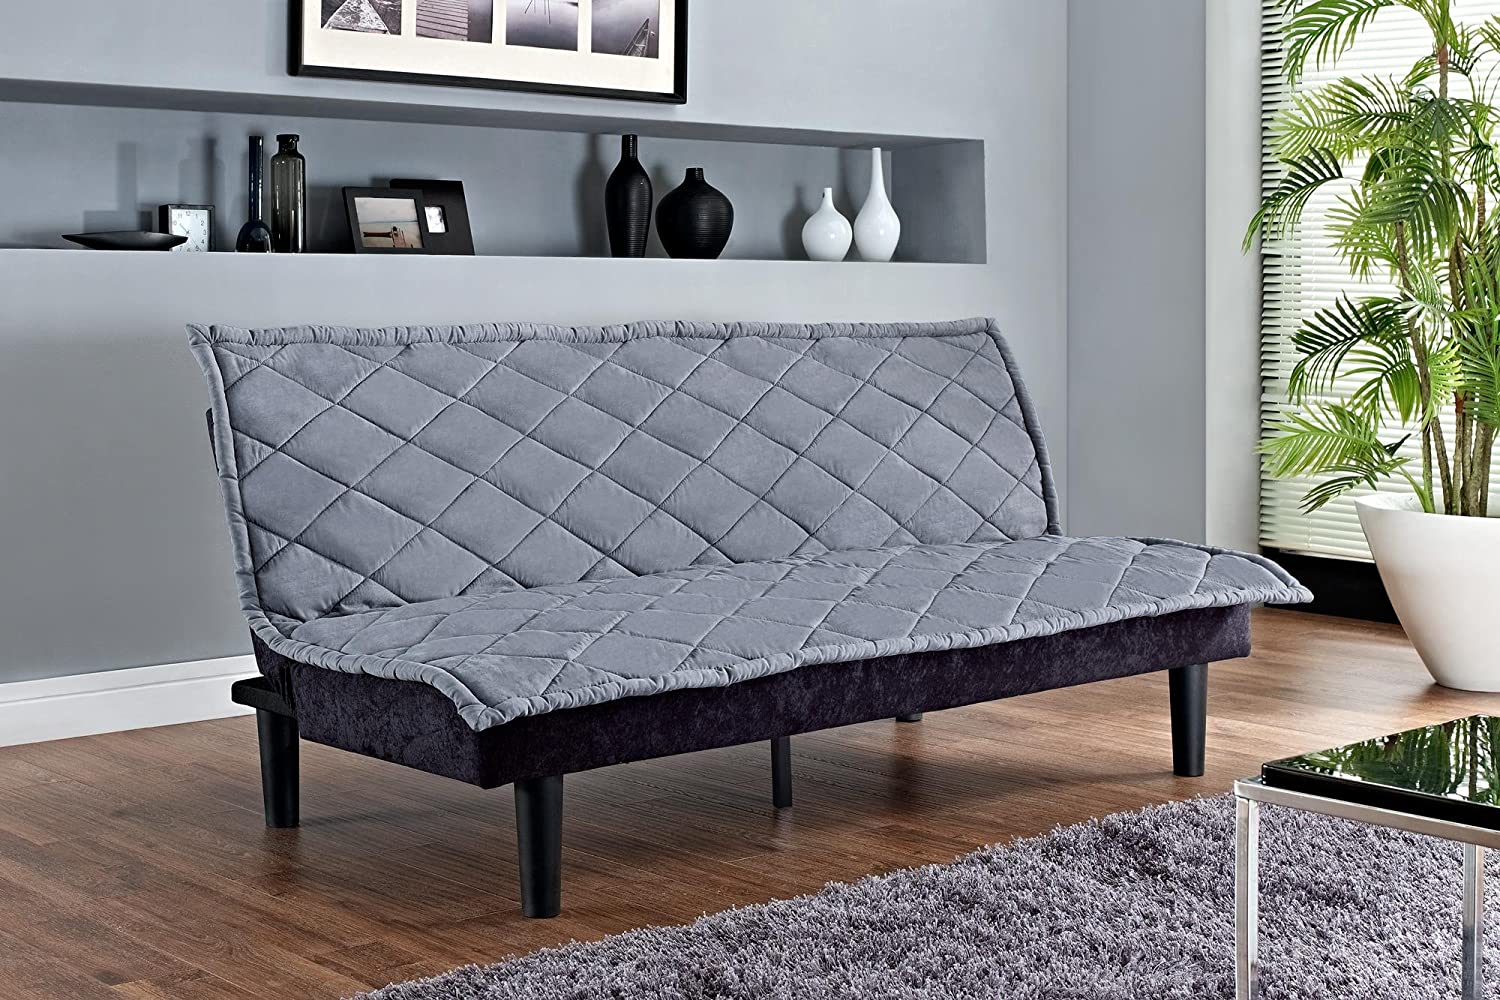 home sofa lounge linen concept chaise walmart picture gray unique dorel com grey futon cushion brent inch futons